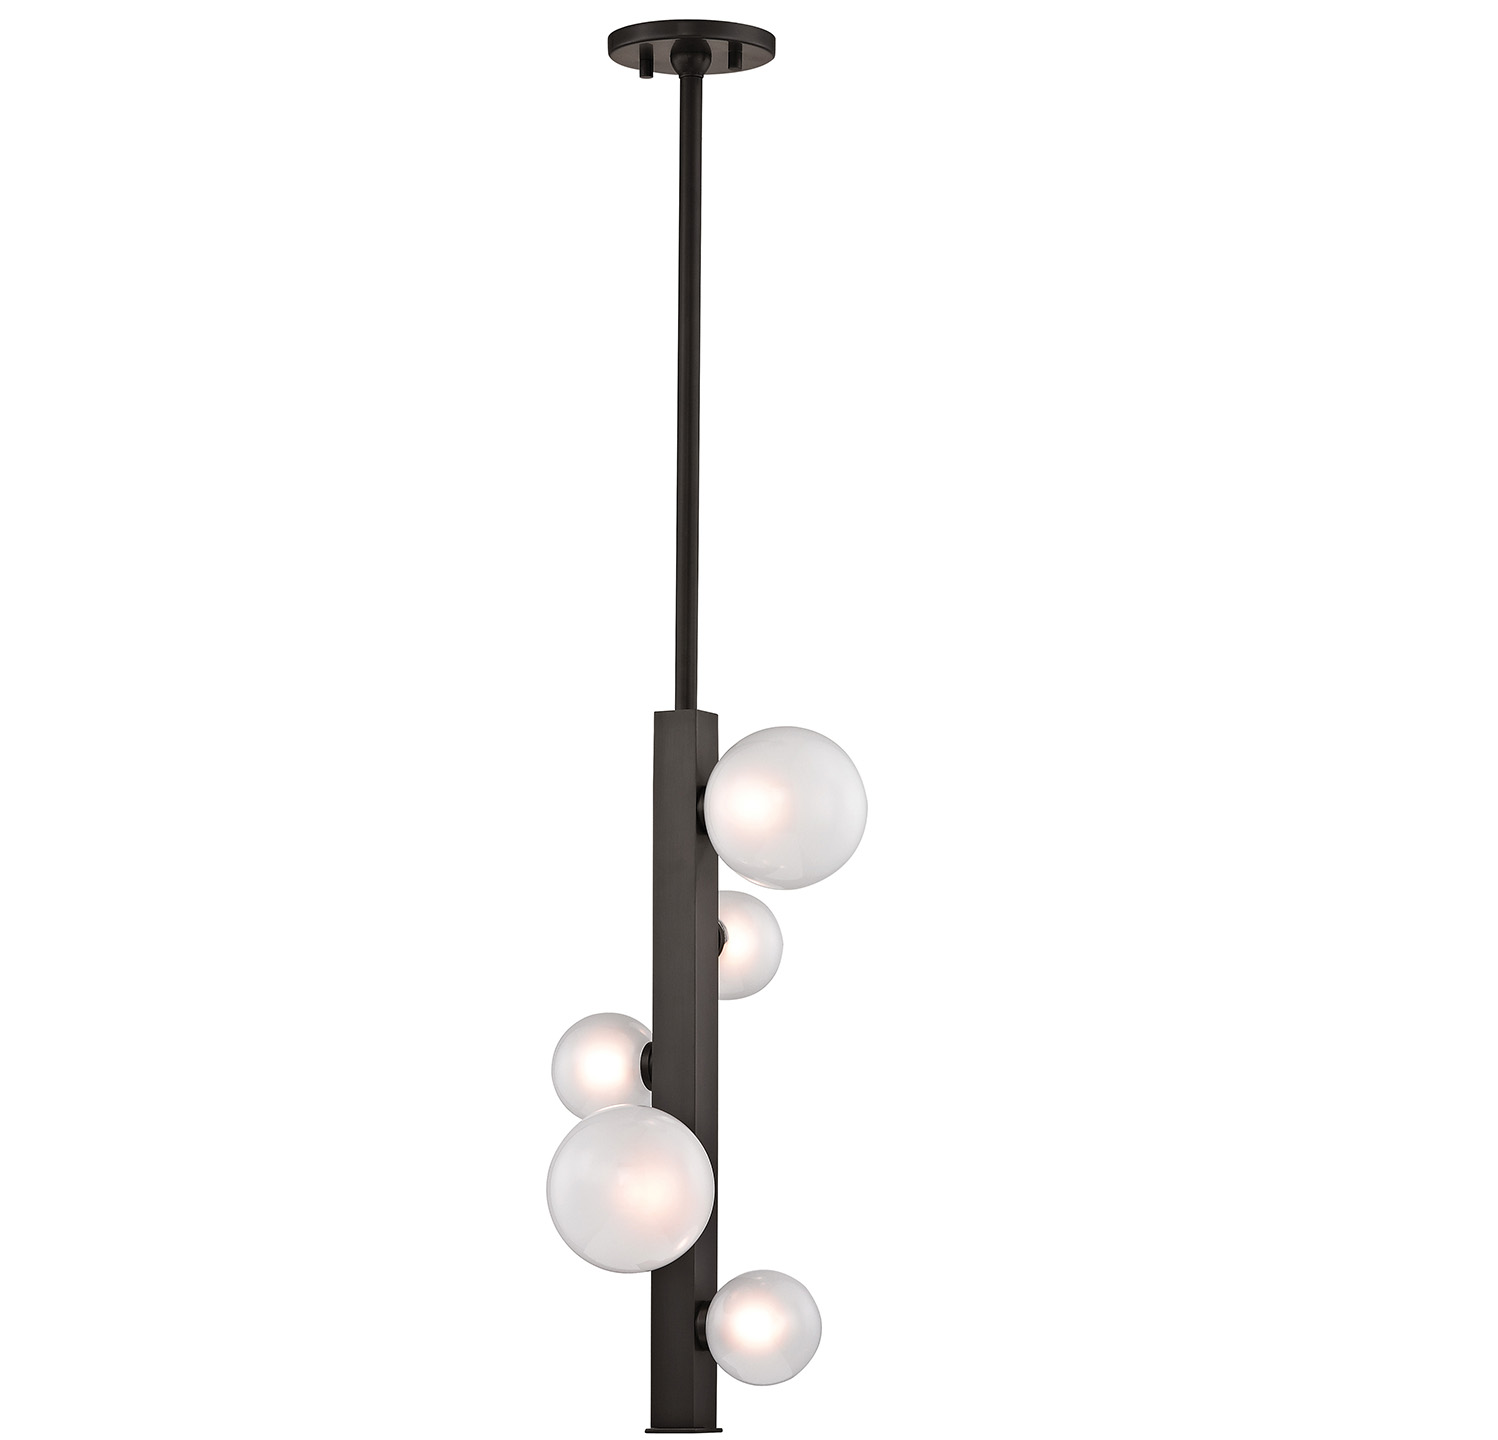 The Mini is offered in brass, bronze and nickel finishes and it is available as a pendant, sconce and floor or table lamp